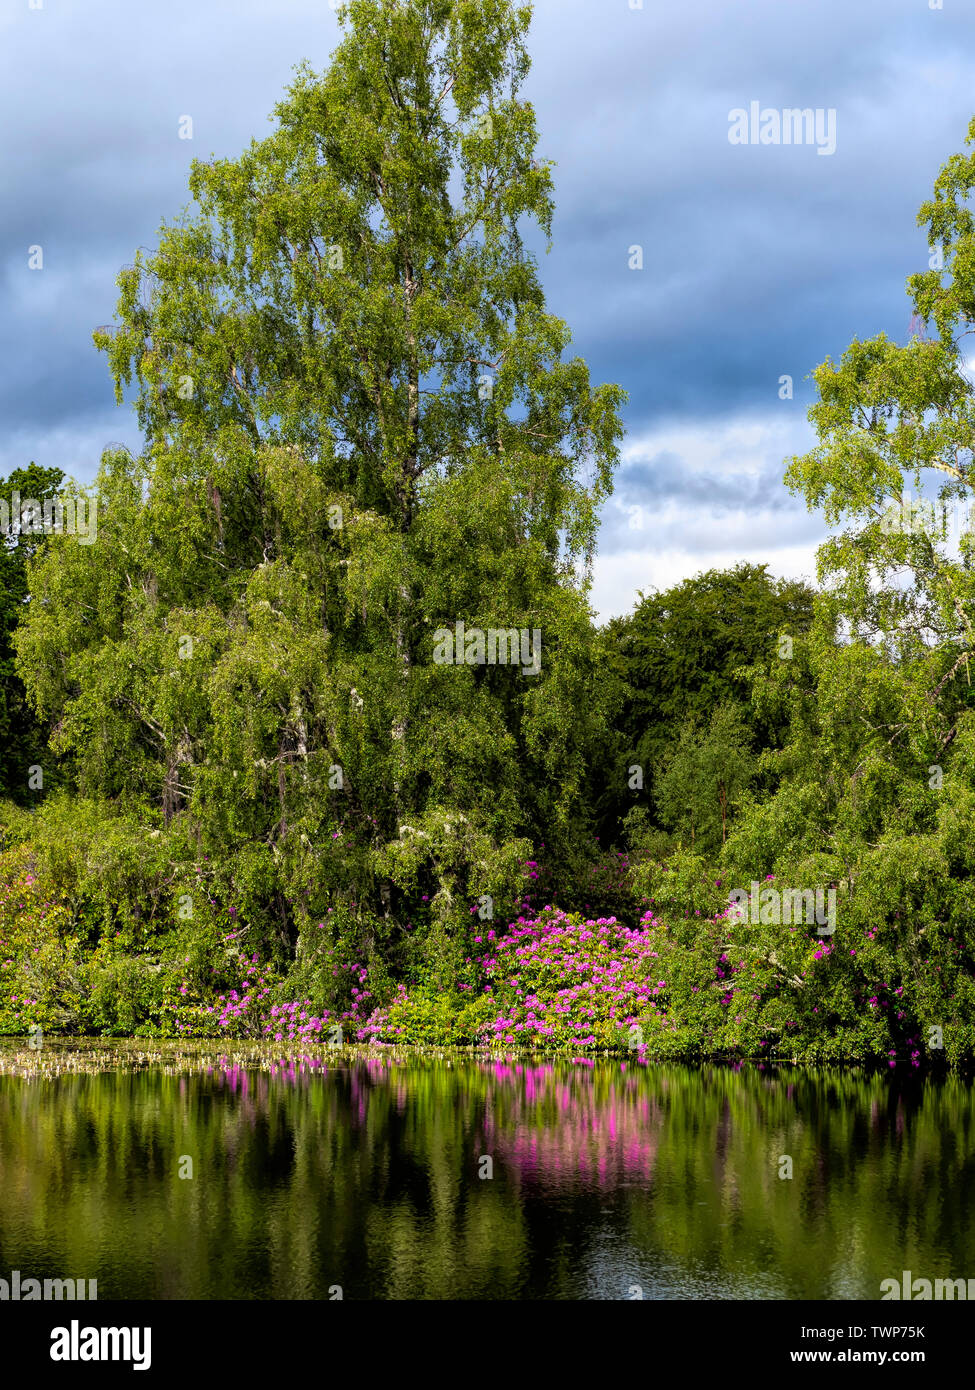 Trees and Rhodendreons at the side of a Loch, Sotland - Stock Image